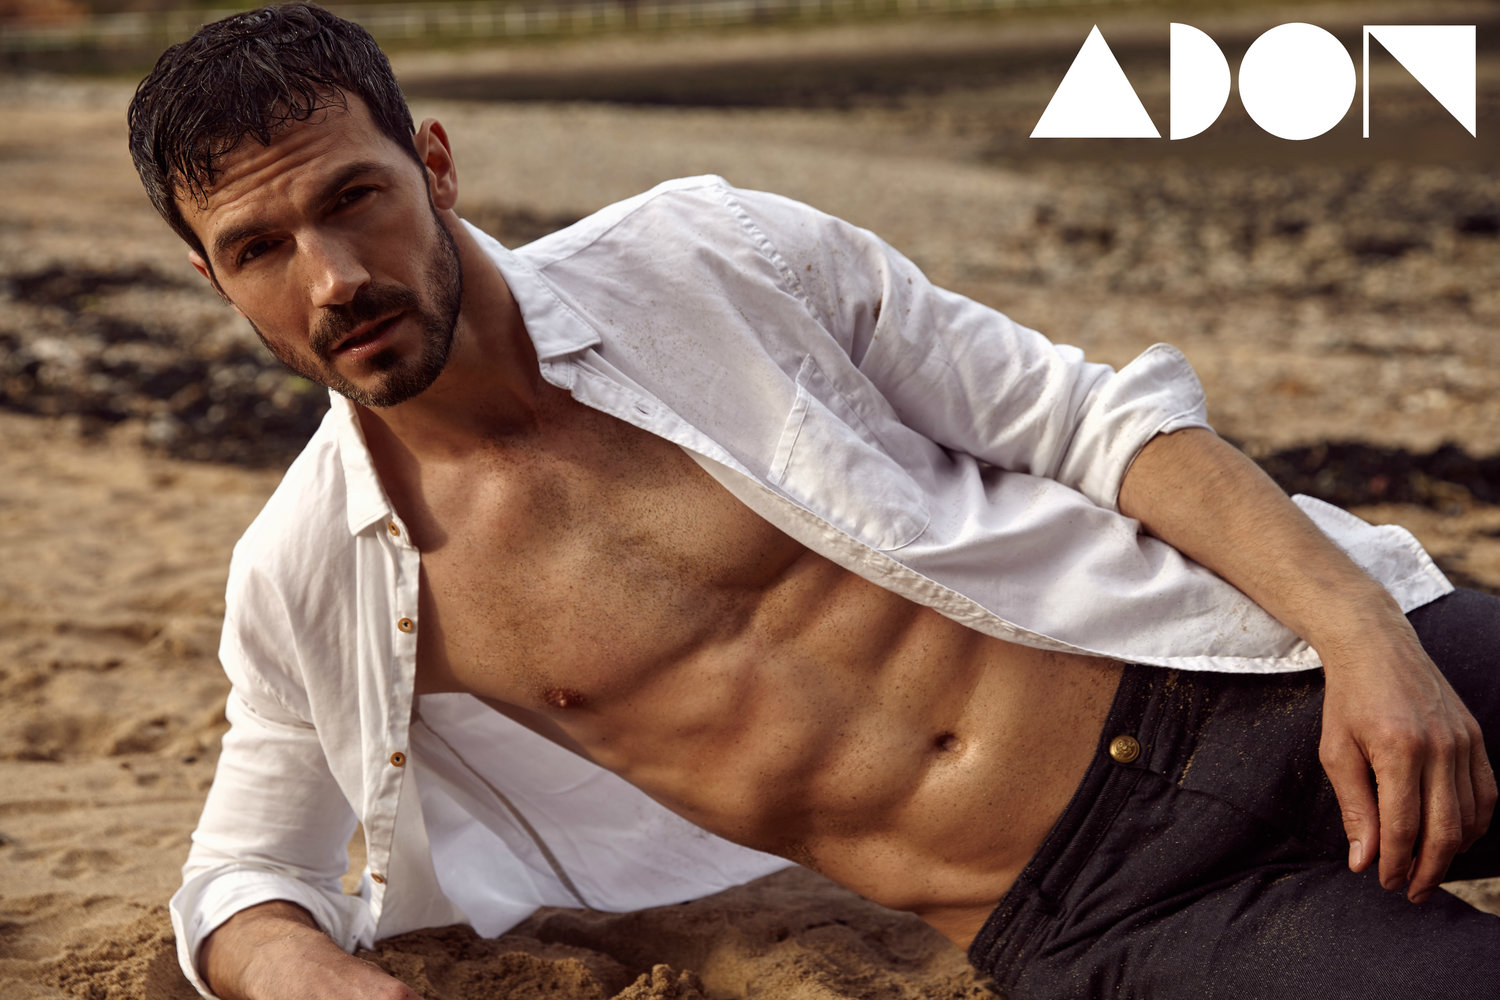 Adon Exclusive: Model Adam Cowie By Nic Jopek